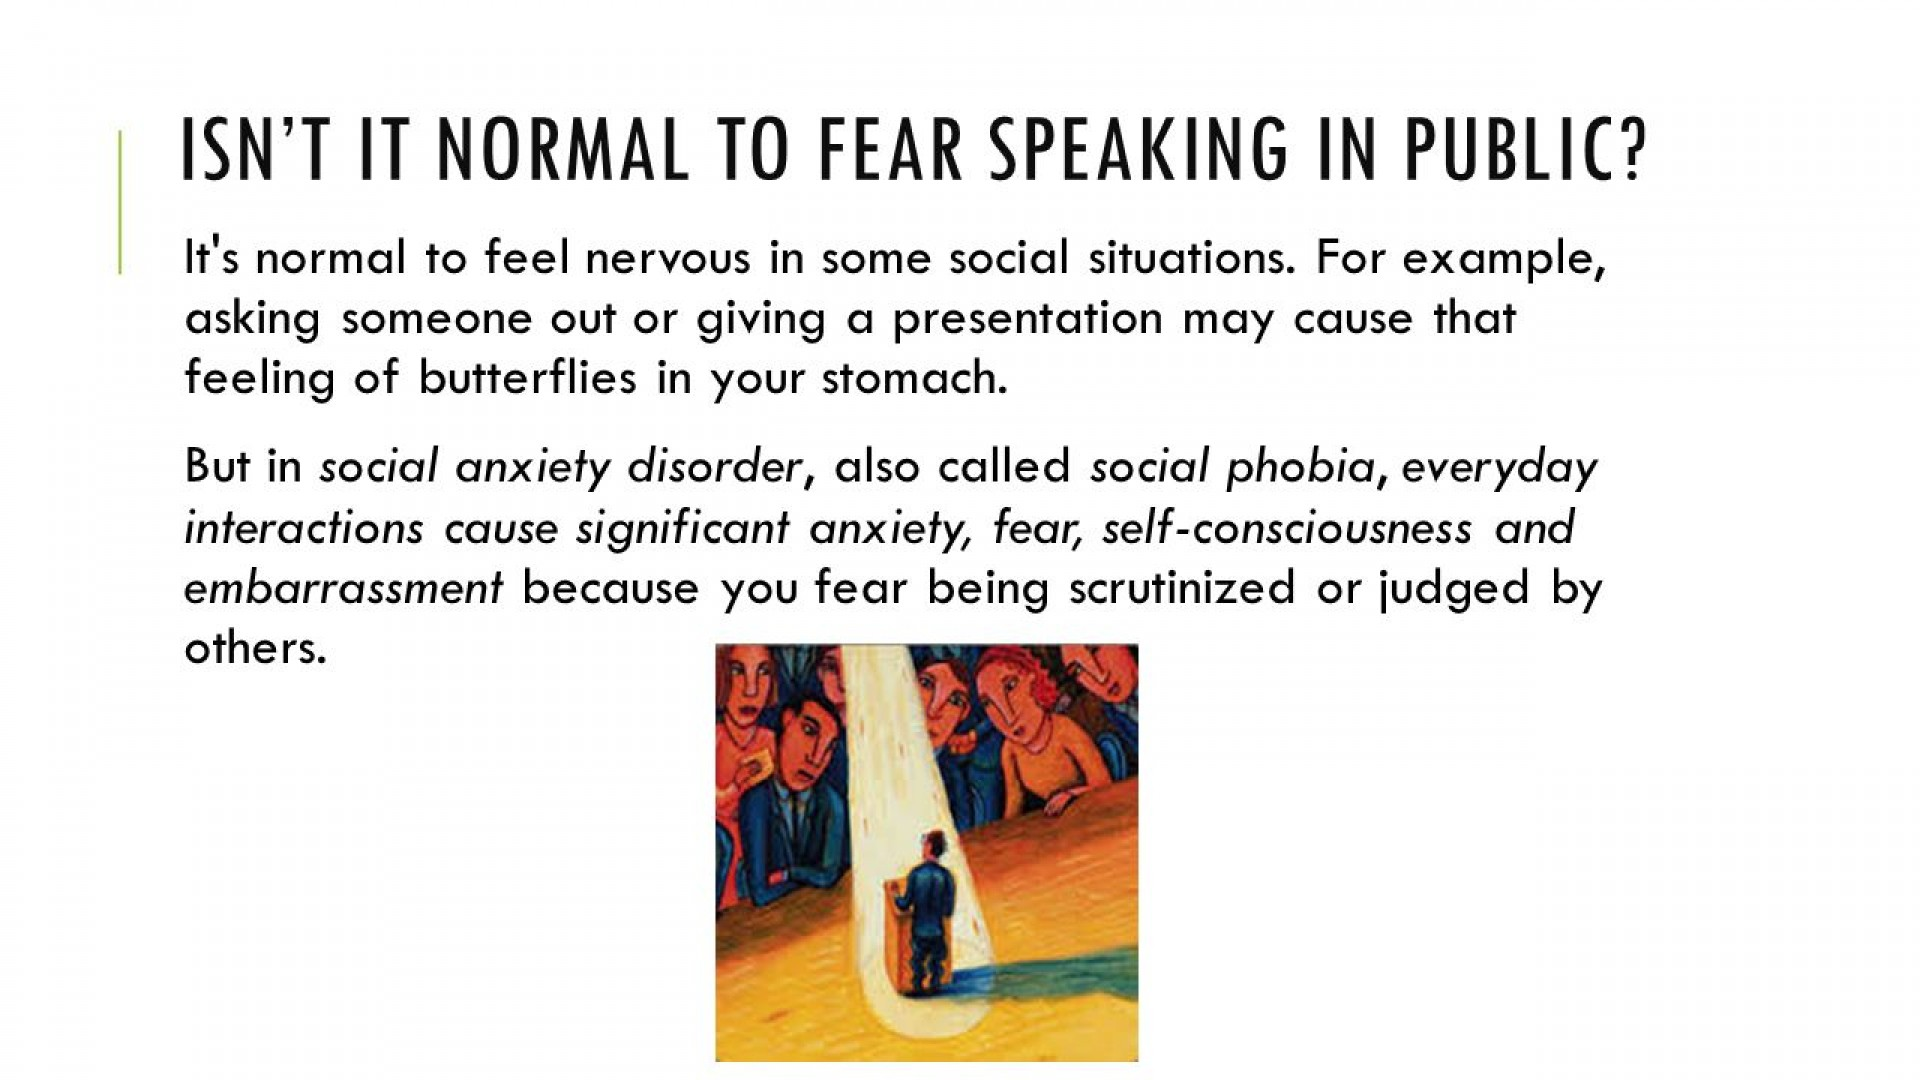 011 Research Paper Isne28099titnormaltofearspeakinginpublic Anxiety Staggering Example 1920